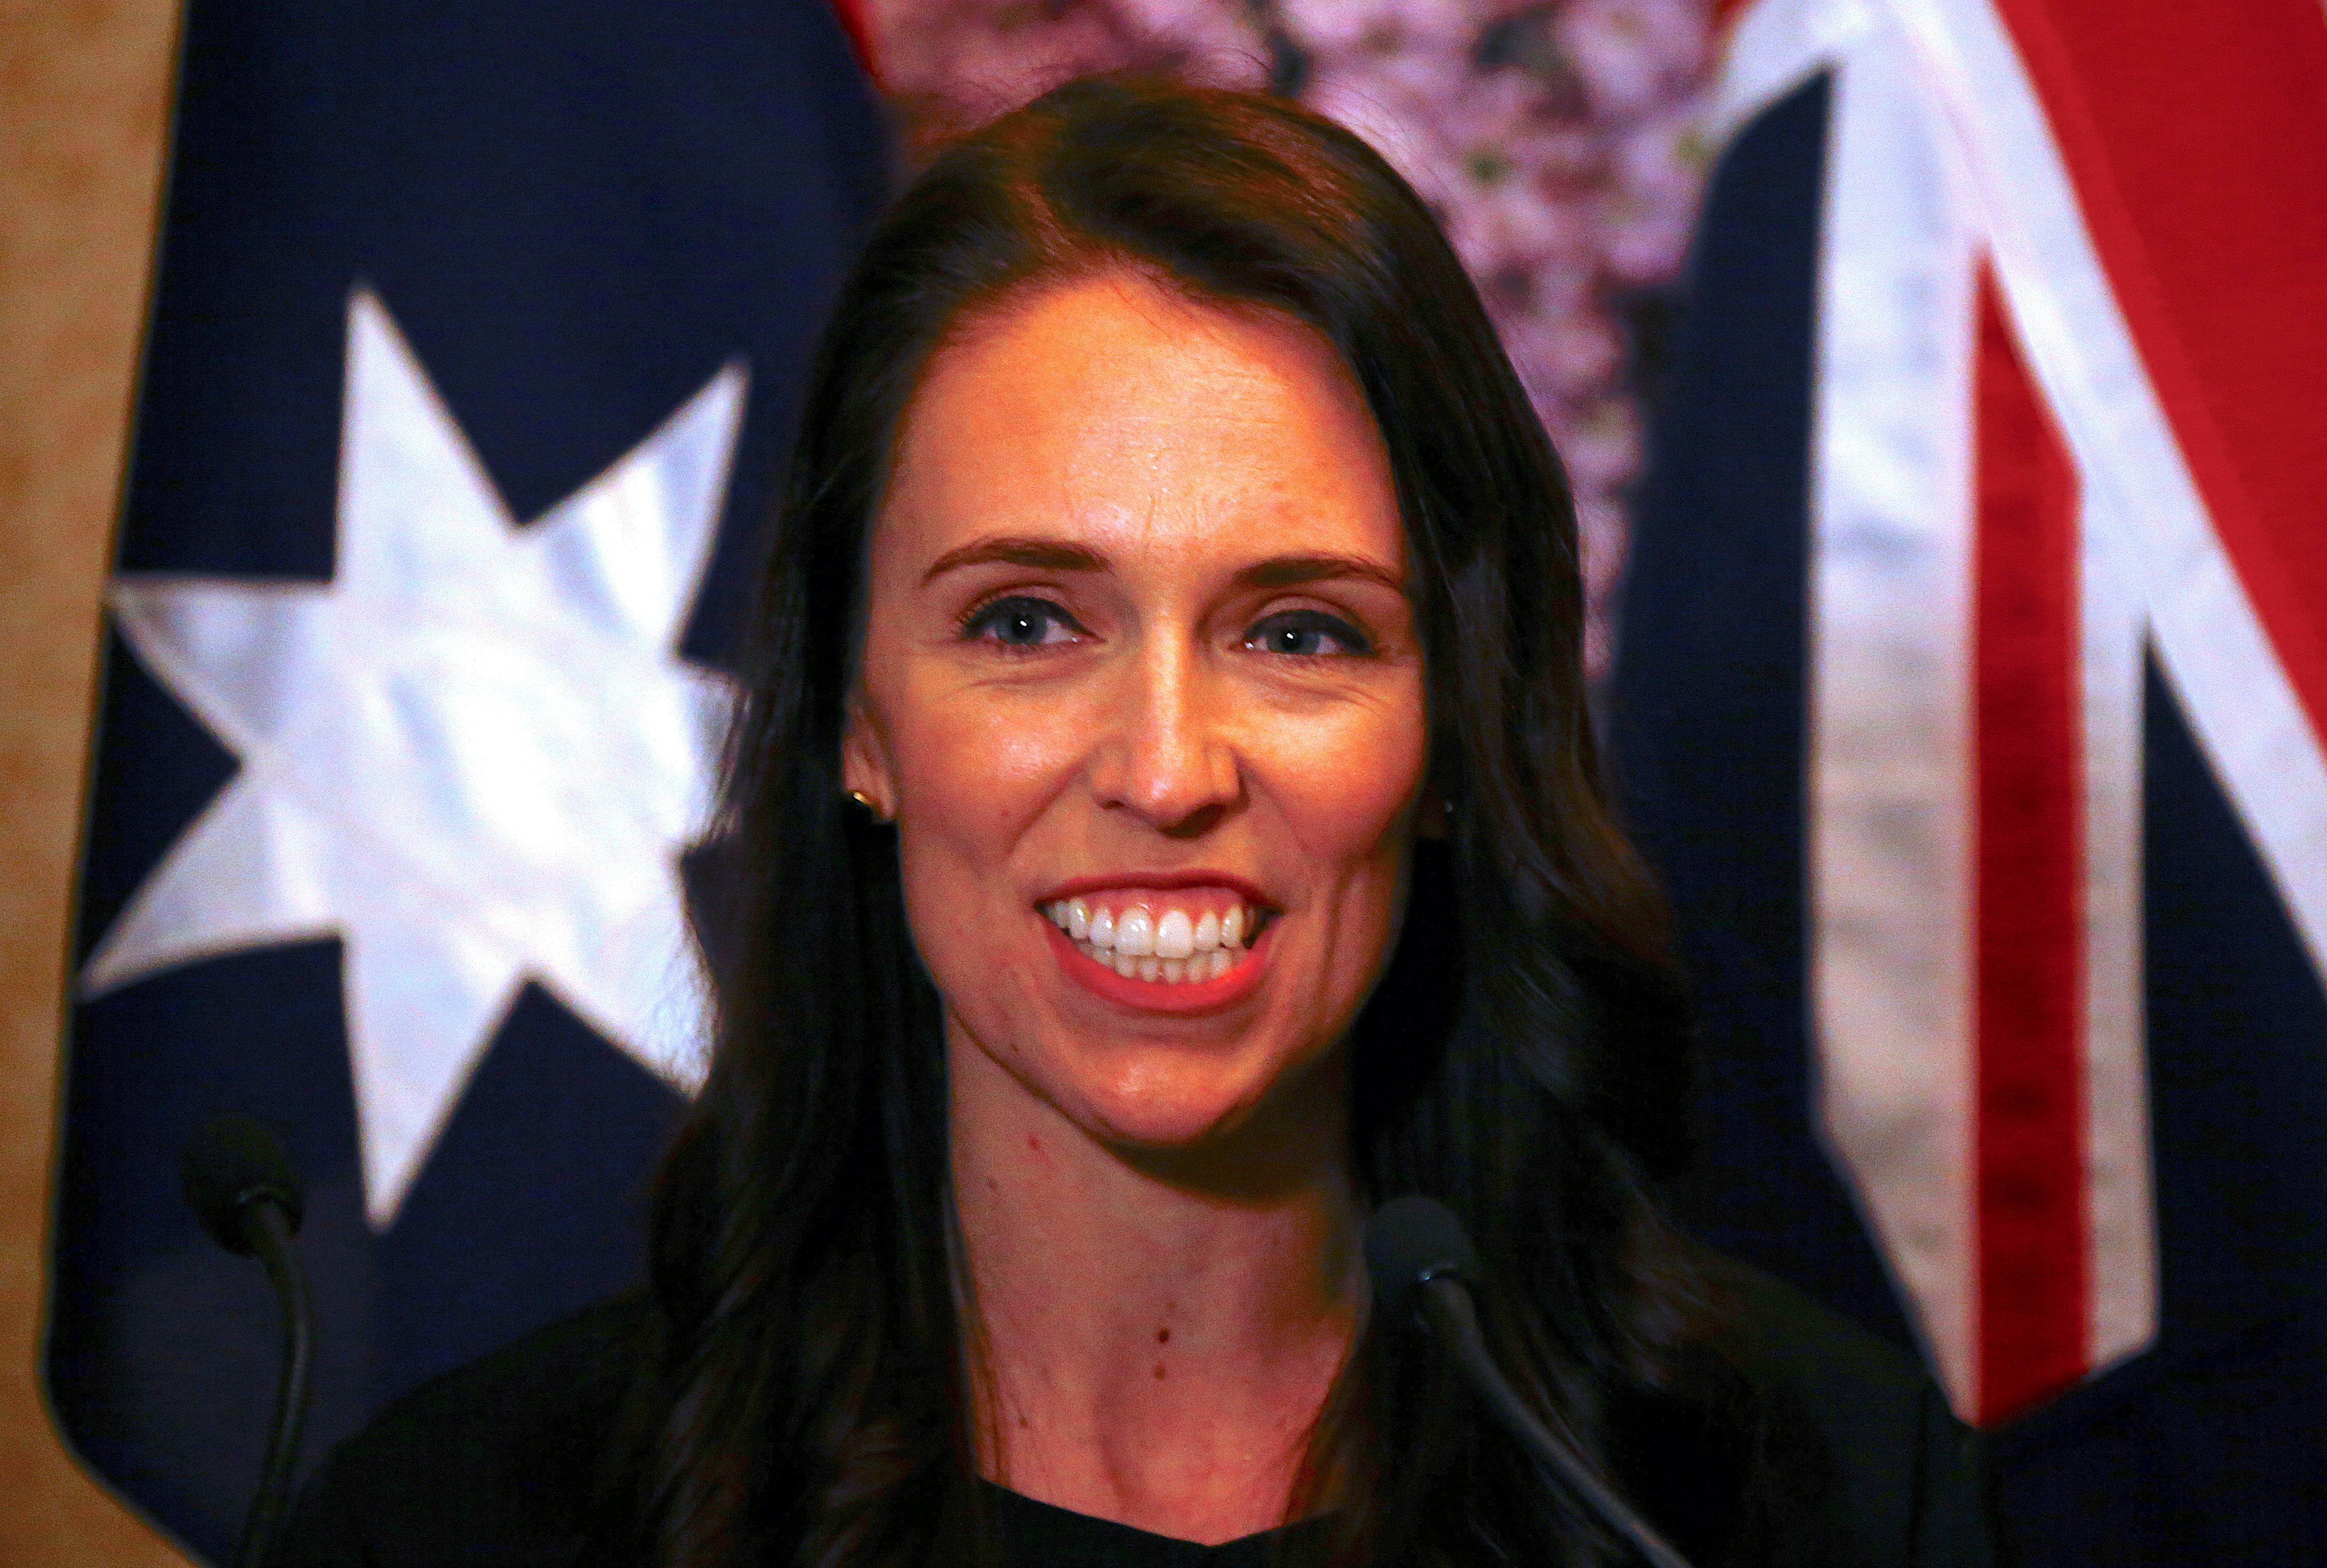 New Zealand Leader Is Considering An Offer To Bury Her Child's